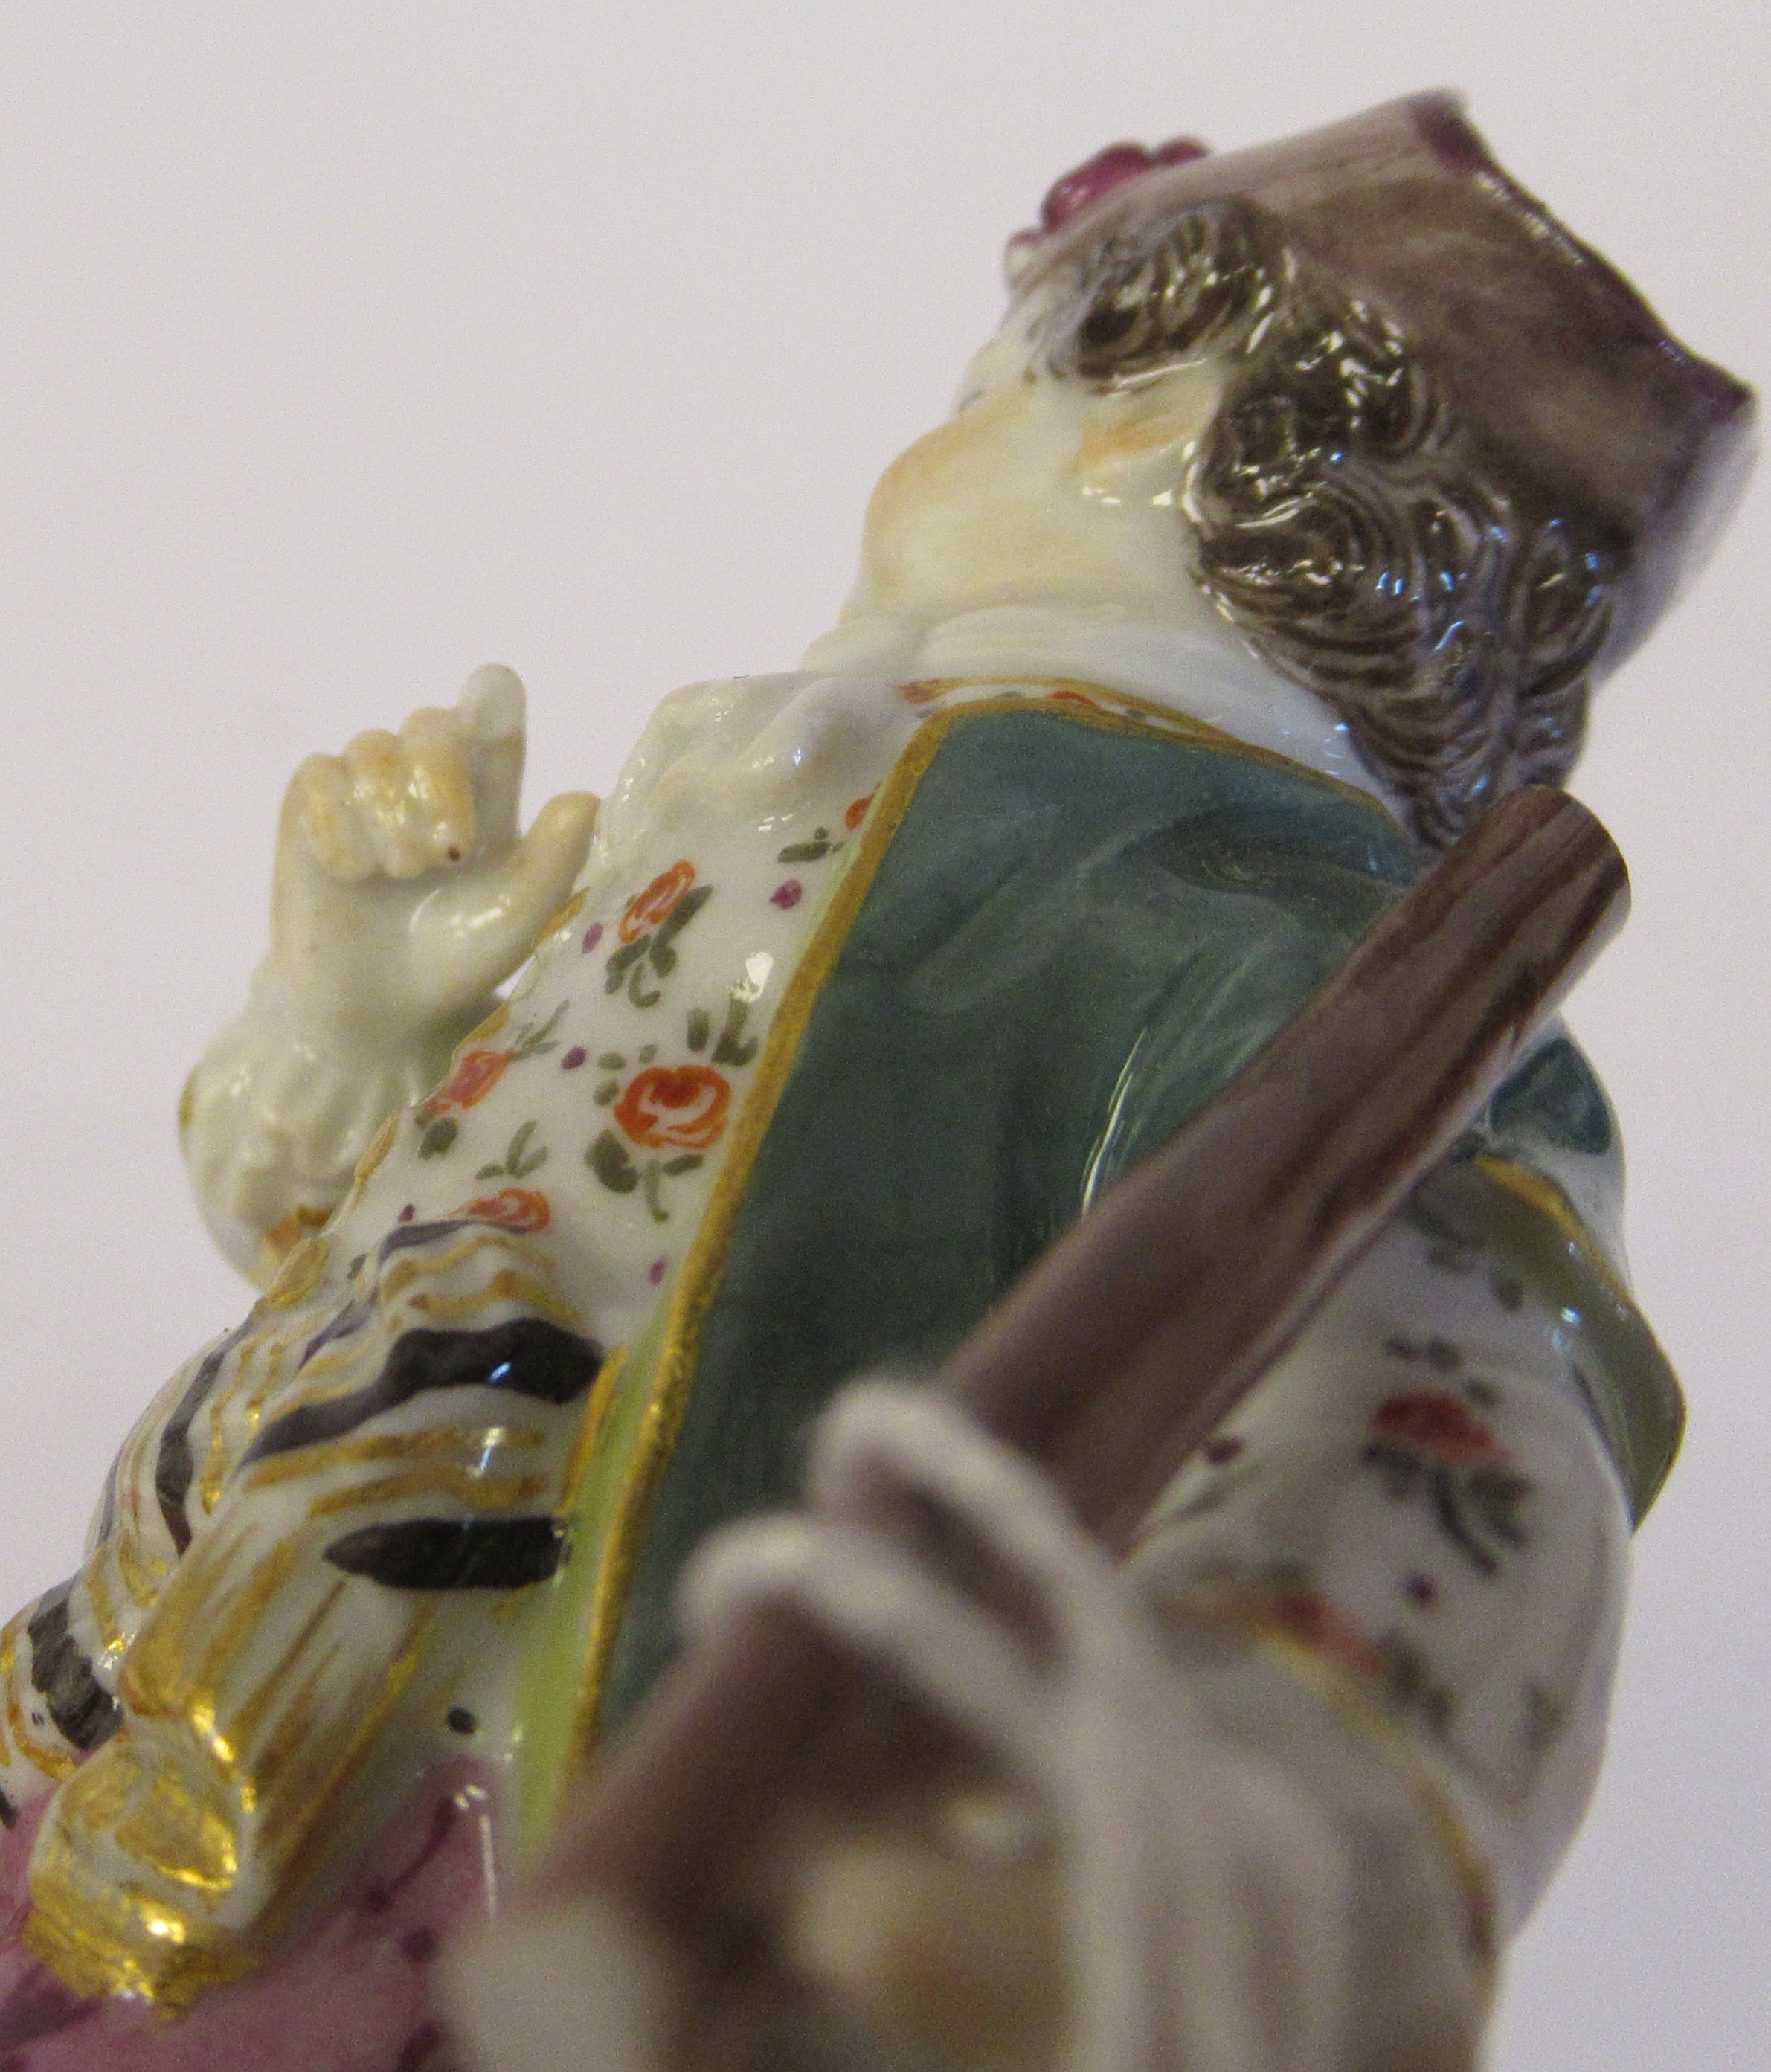 A 19th/20thC Meissen porcelain figure, a boy wearing a frock coat with a dog at his side, on a - Image 4 of 4